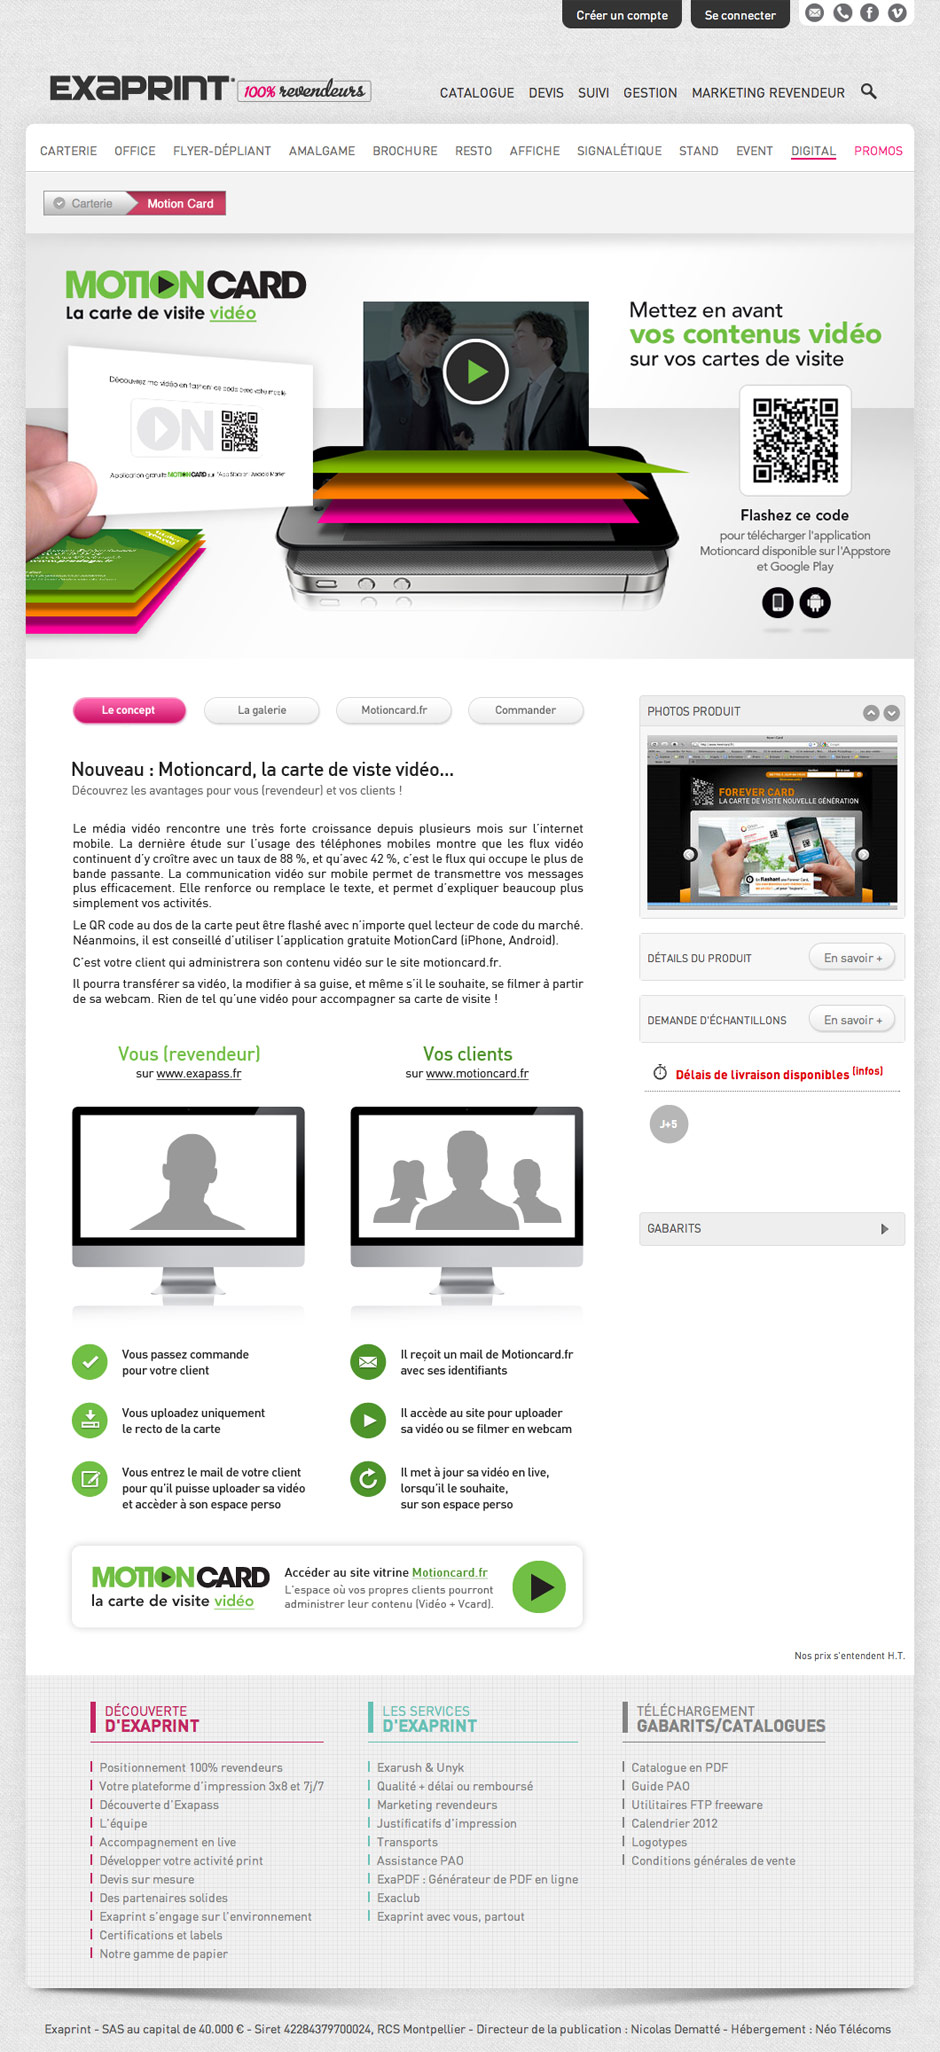 graphiste-montpellier-creation-exaprint-motioncard-agence-communication-montpellier-caconcept-alexis-cretin-3